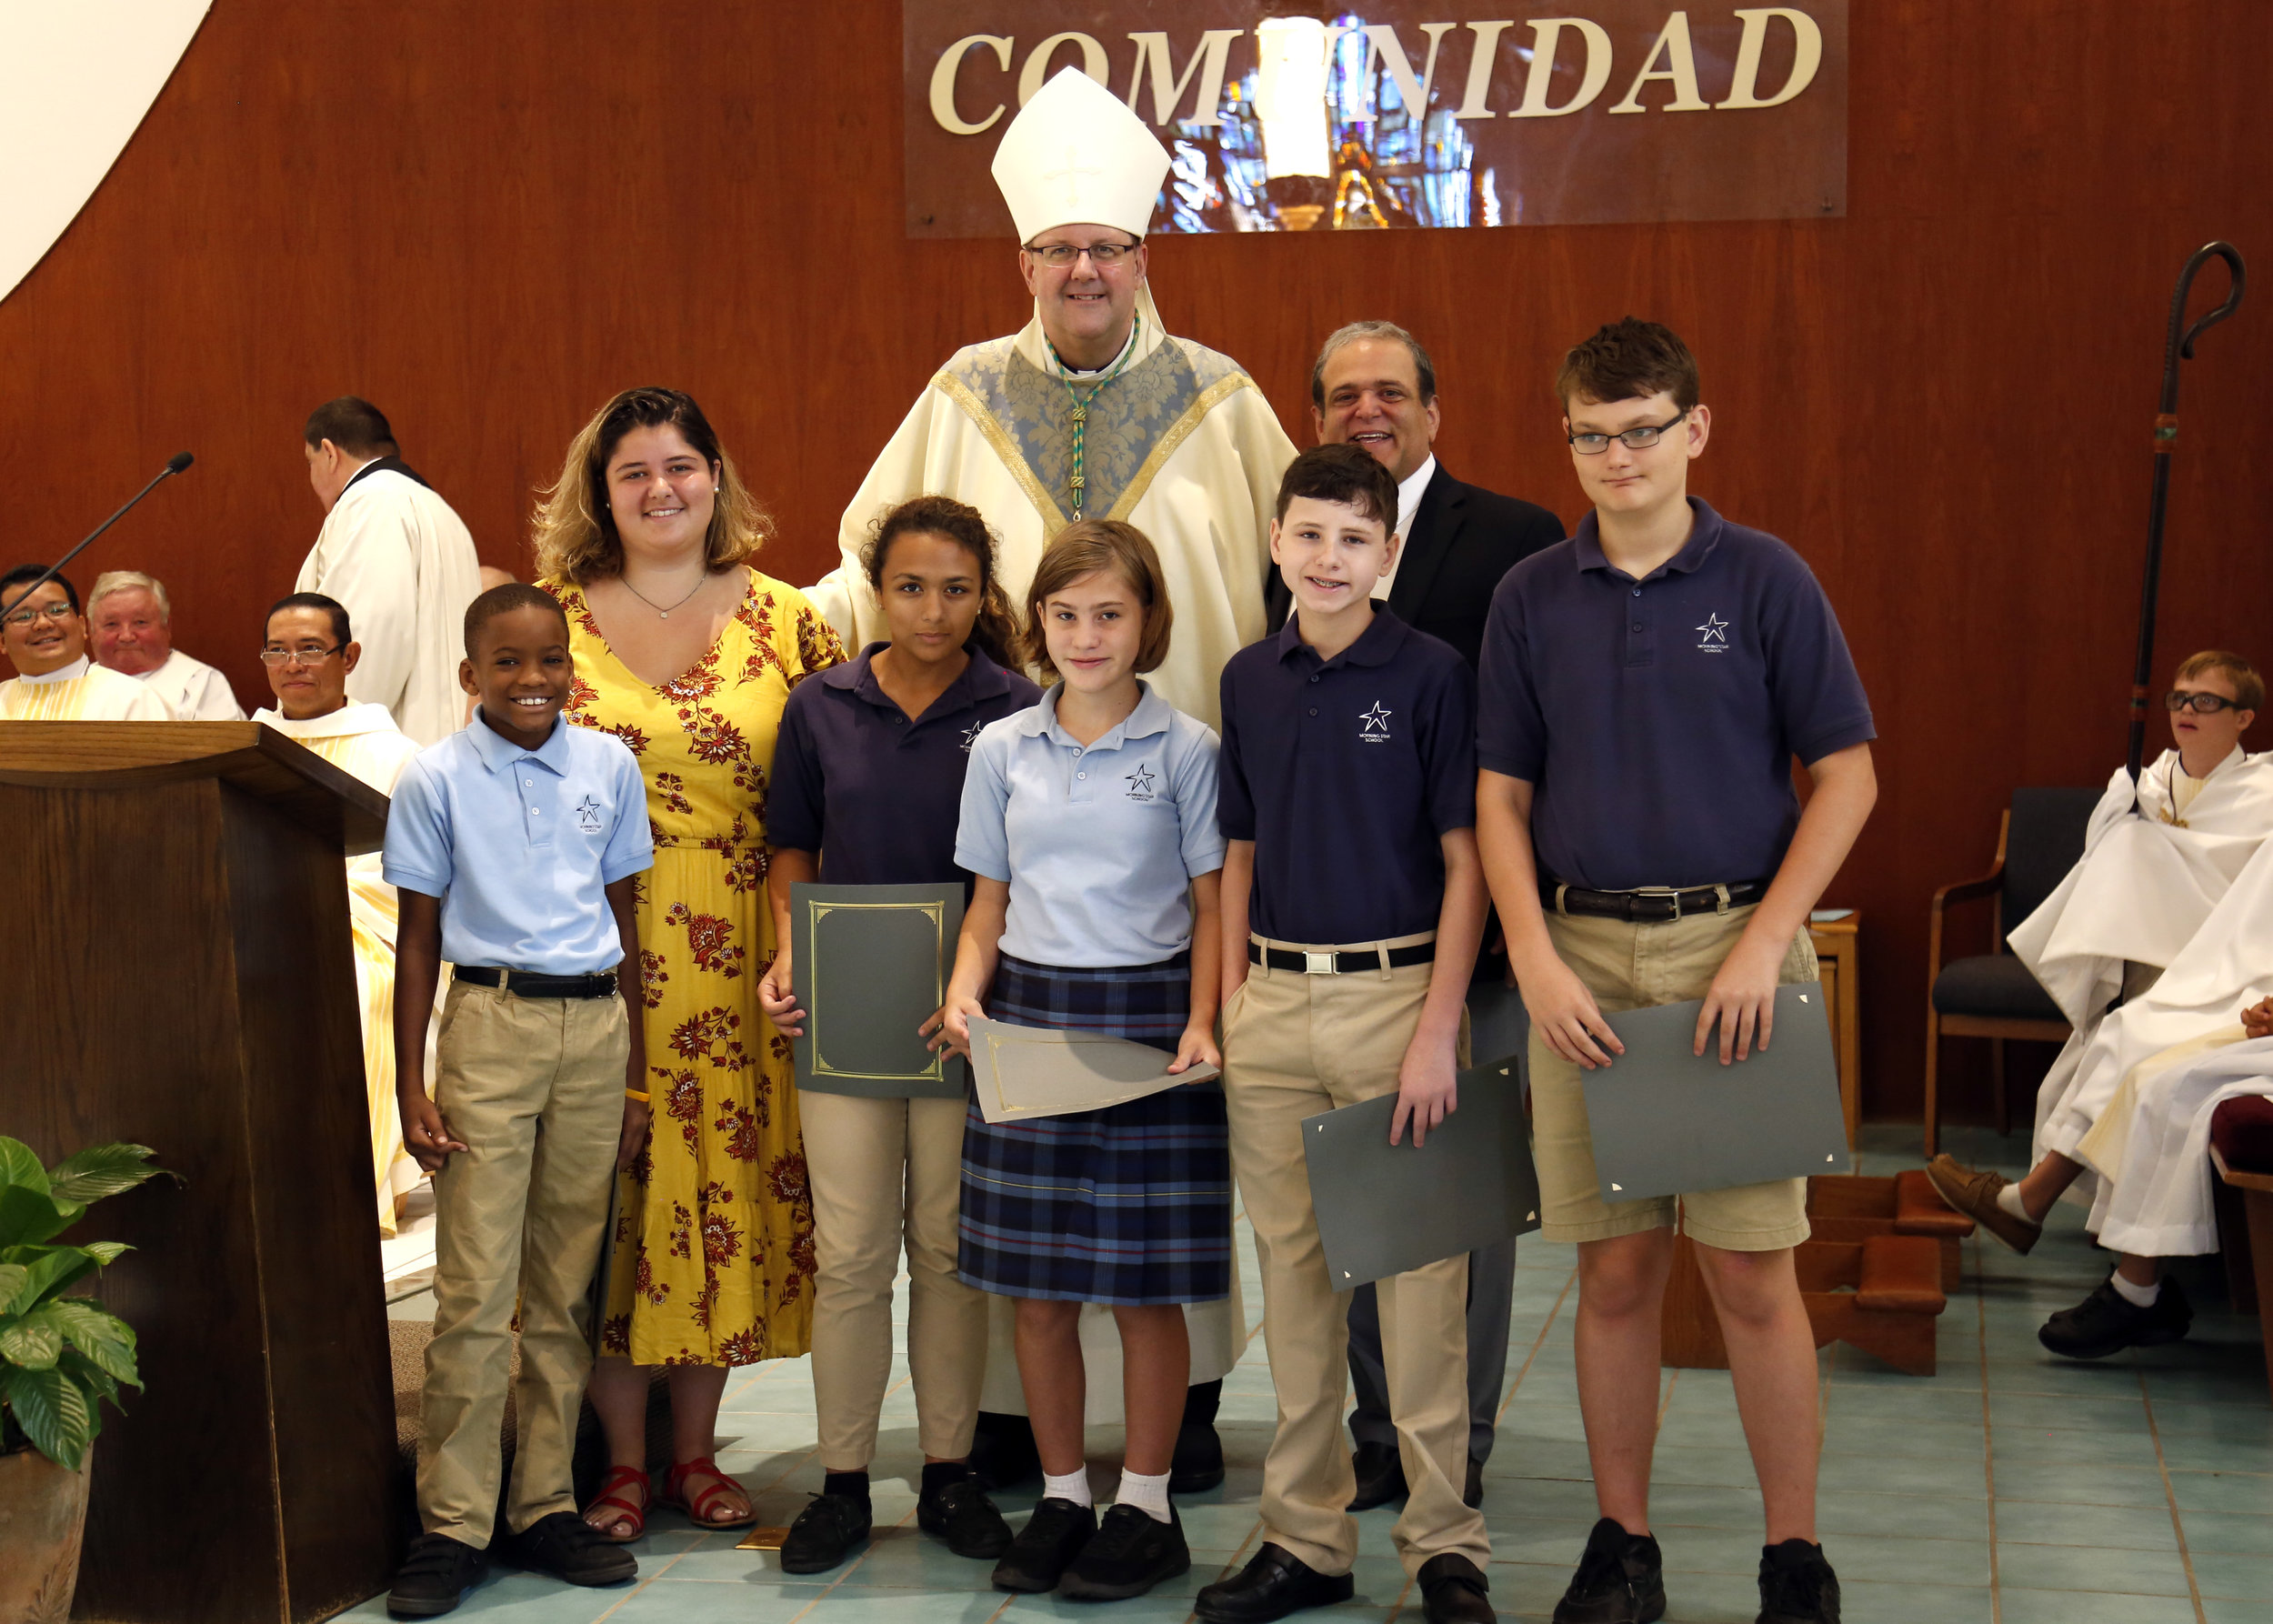 Scholarship winners (Front Left to Right) Jacob Green, Hailey Serafin, Gianna Lujan, Anthony Cano, and Samuel DeWitt with (Back Left to Right) Director of Gina Marie Rey Foundation Isabelle Galantino, Bishop Gregory Parkes, and President of Gina Marie Rey Foundation Peter Galantino.